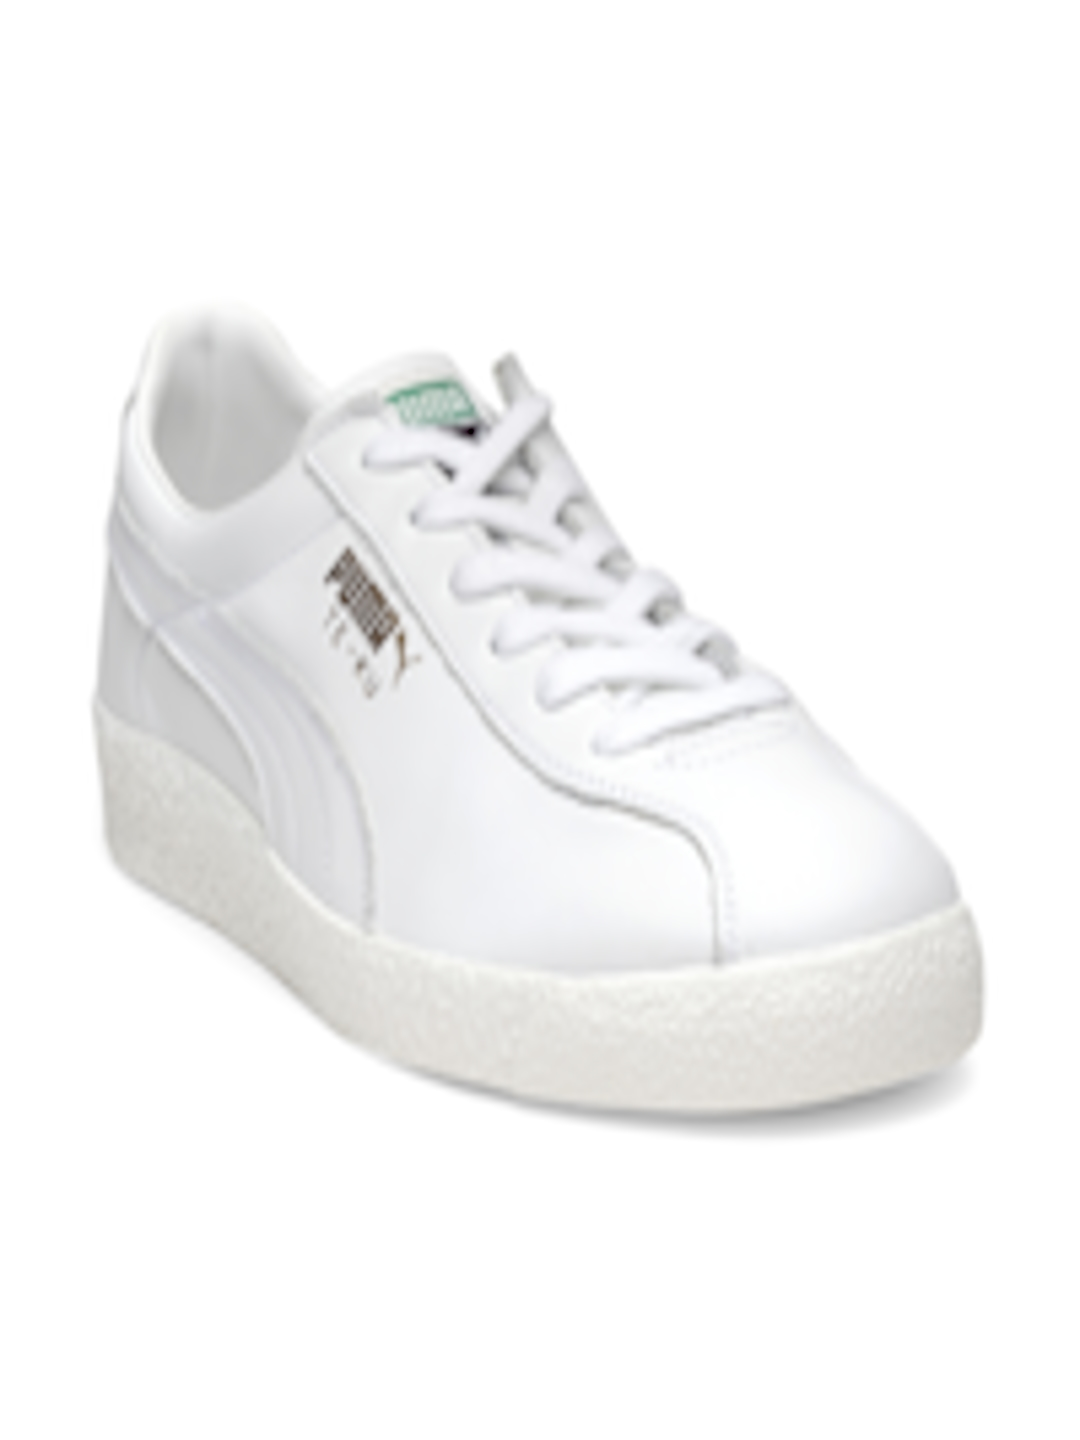 53aebd60c7182c Buy Puma Men White Te Ku Core Leather Sneakers - Casual Shoes for Men  2454569